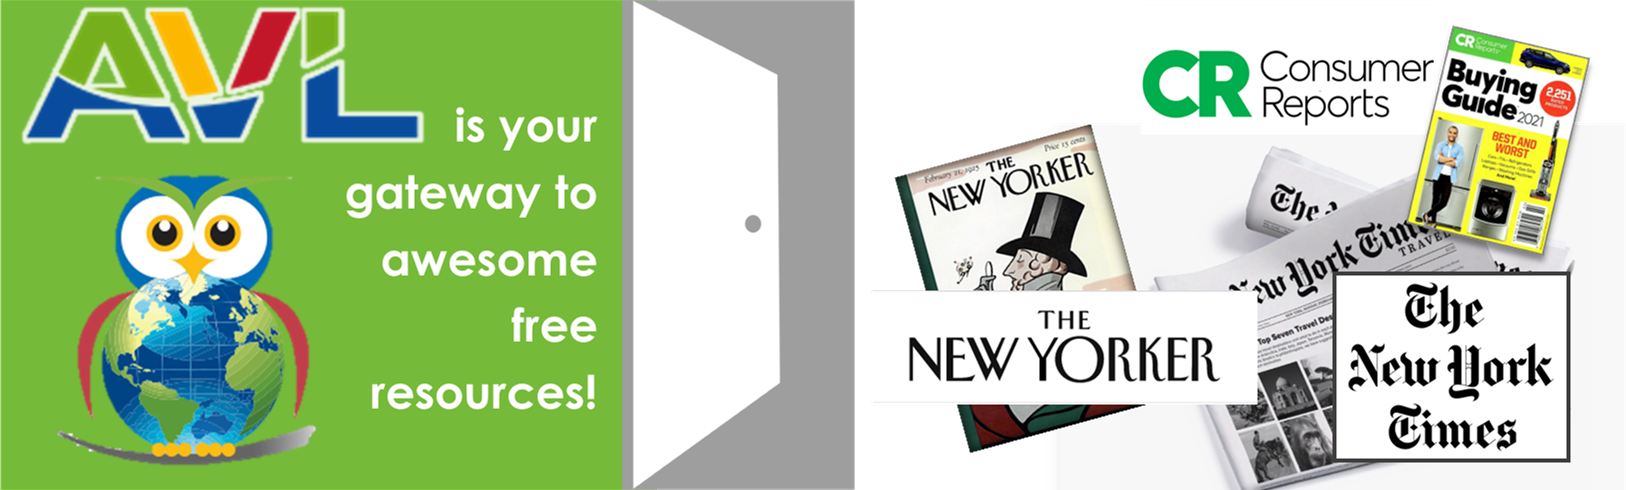 Alabama Virtual Library is your gateway to fantastic free resources such as: The New York Times newspaper, New Yorker magazine, and Consumer Reports magazine! Click on the AVL link on the Home page or in the Adult Resources to get started!